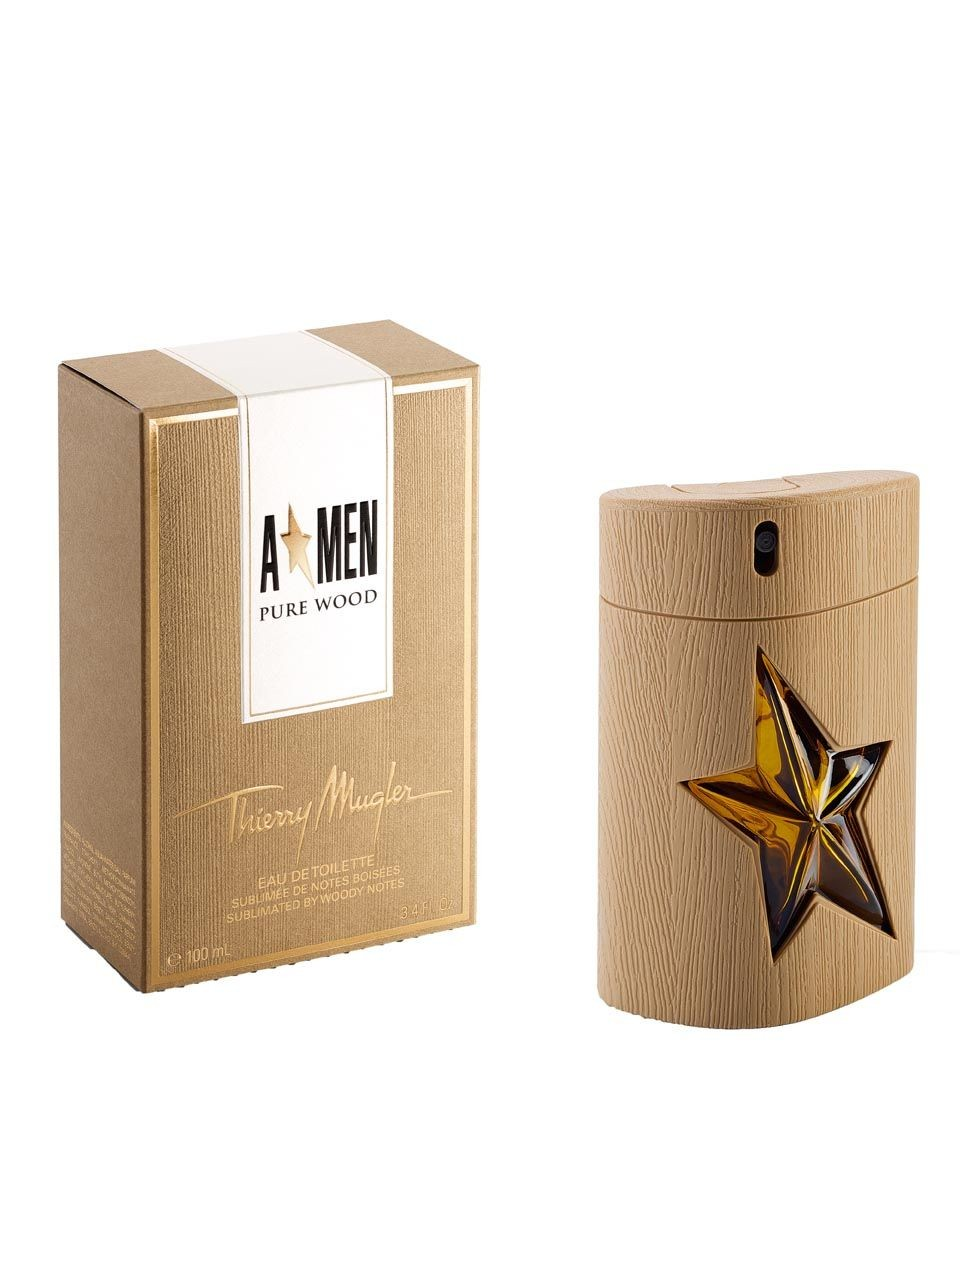 a men pure wood thierry mugler cologne a new fragrance. Black Bedroom Furniture Sets. Home Design Ideas